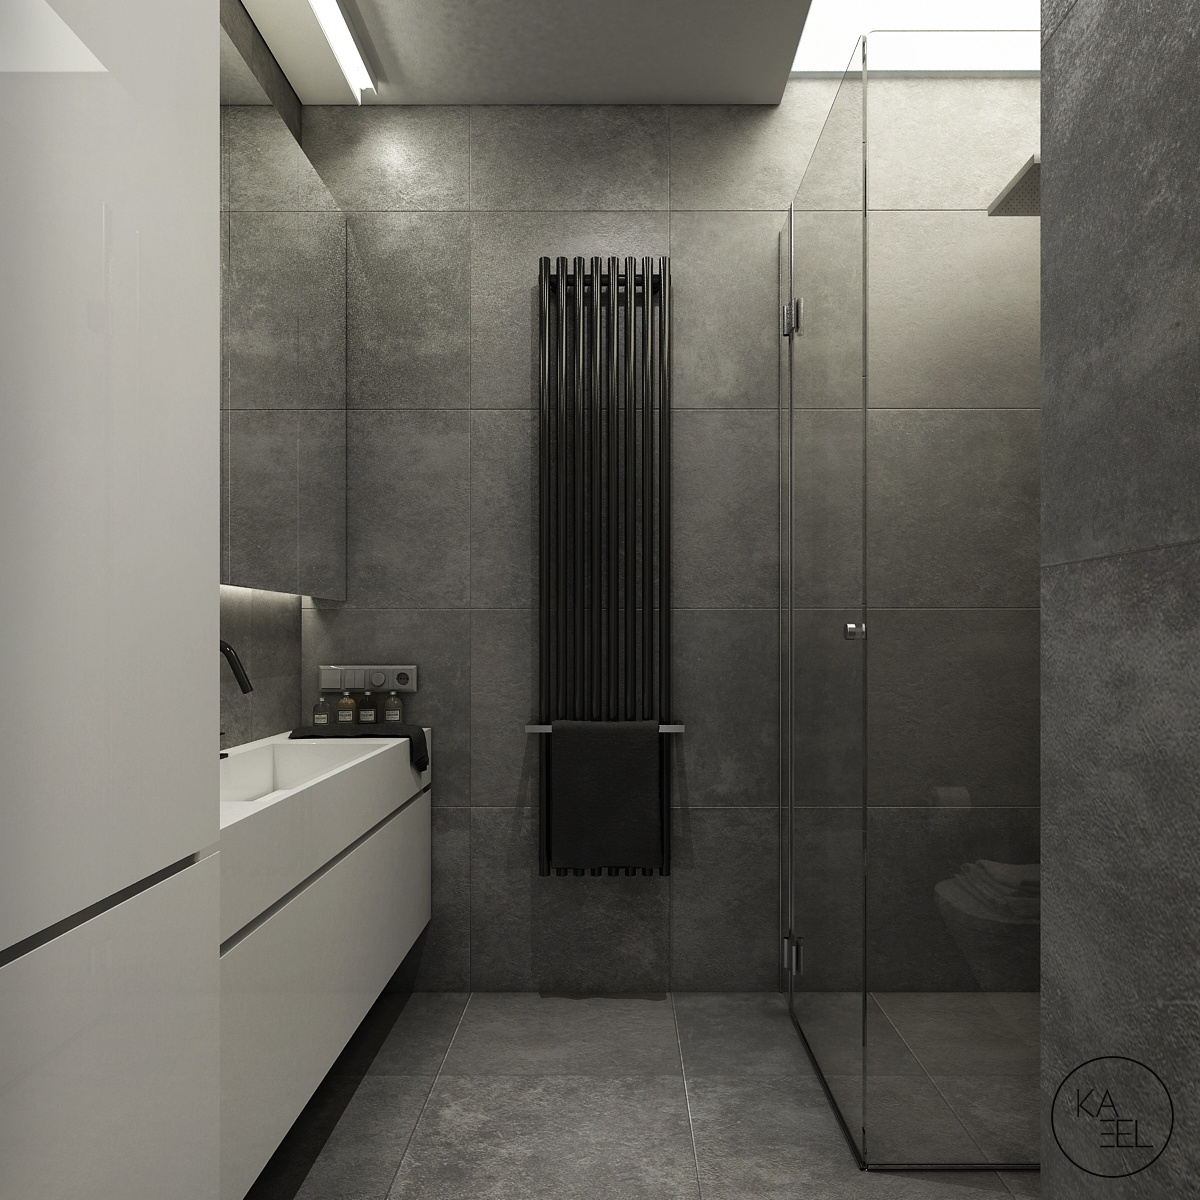 slate-tile-bathroom | interior design ideas.